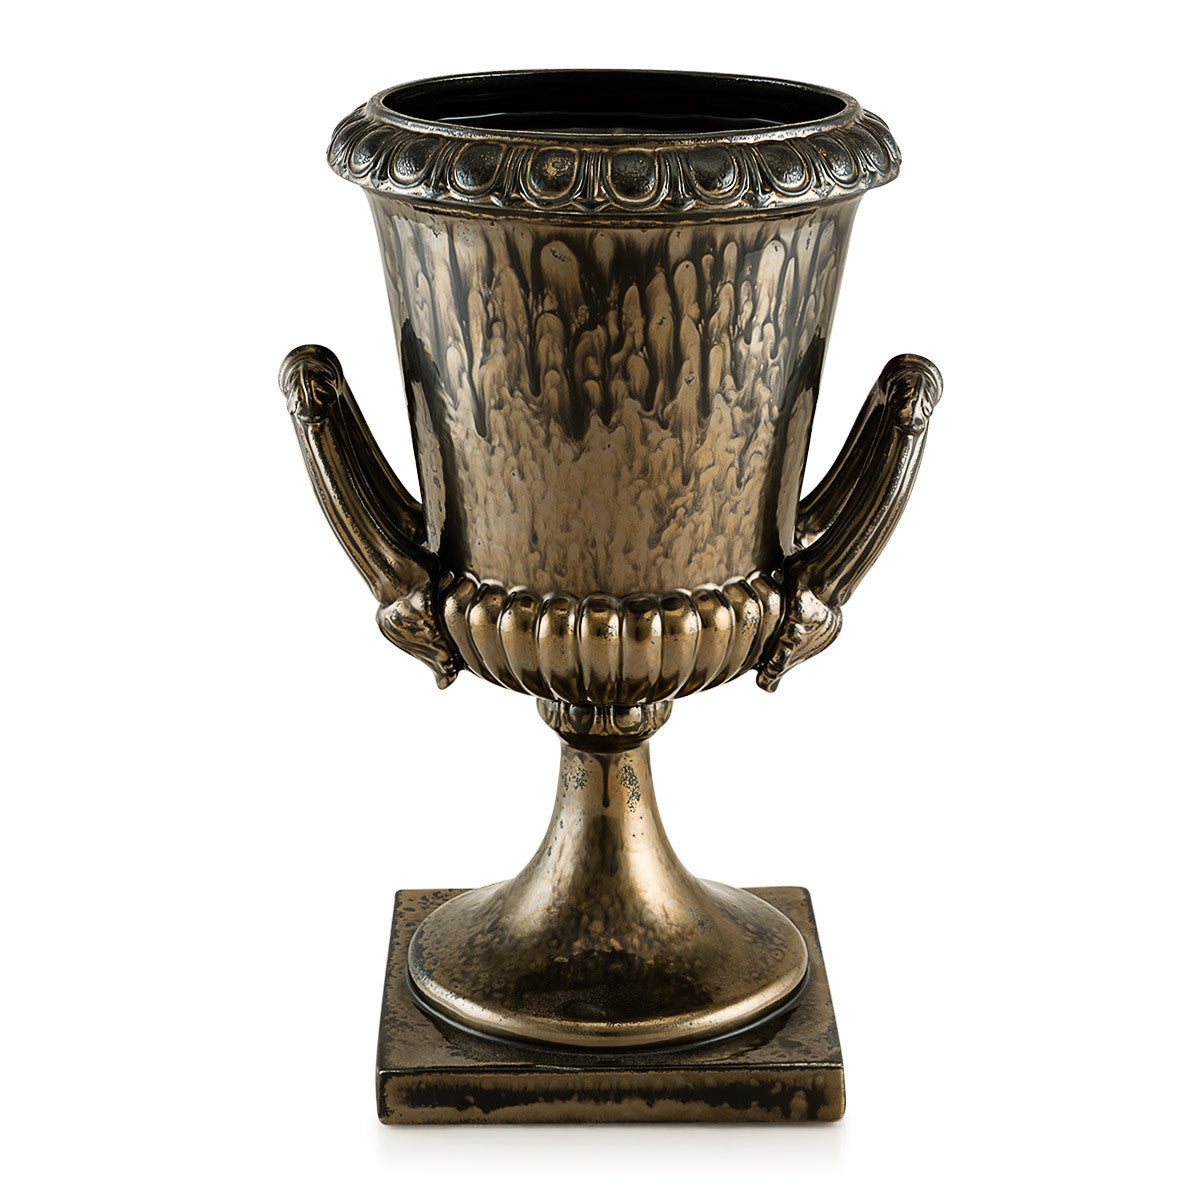 Ceramic krater vase with two handles in burnished bronze | Vinci